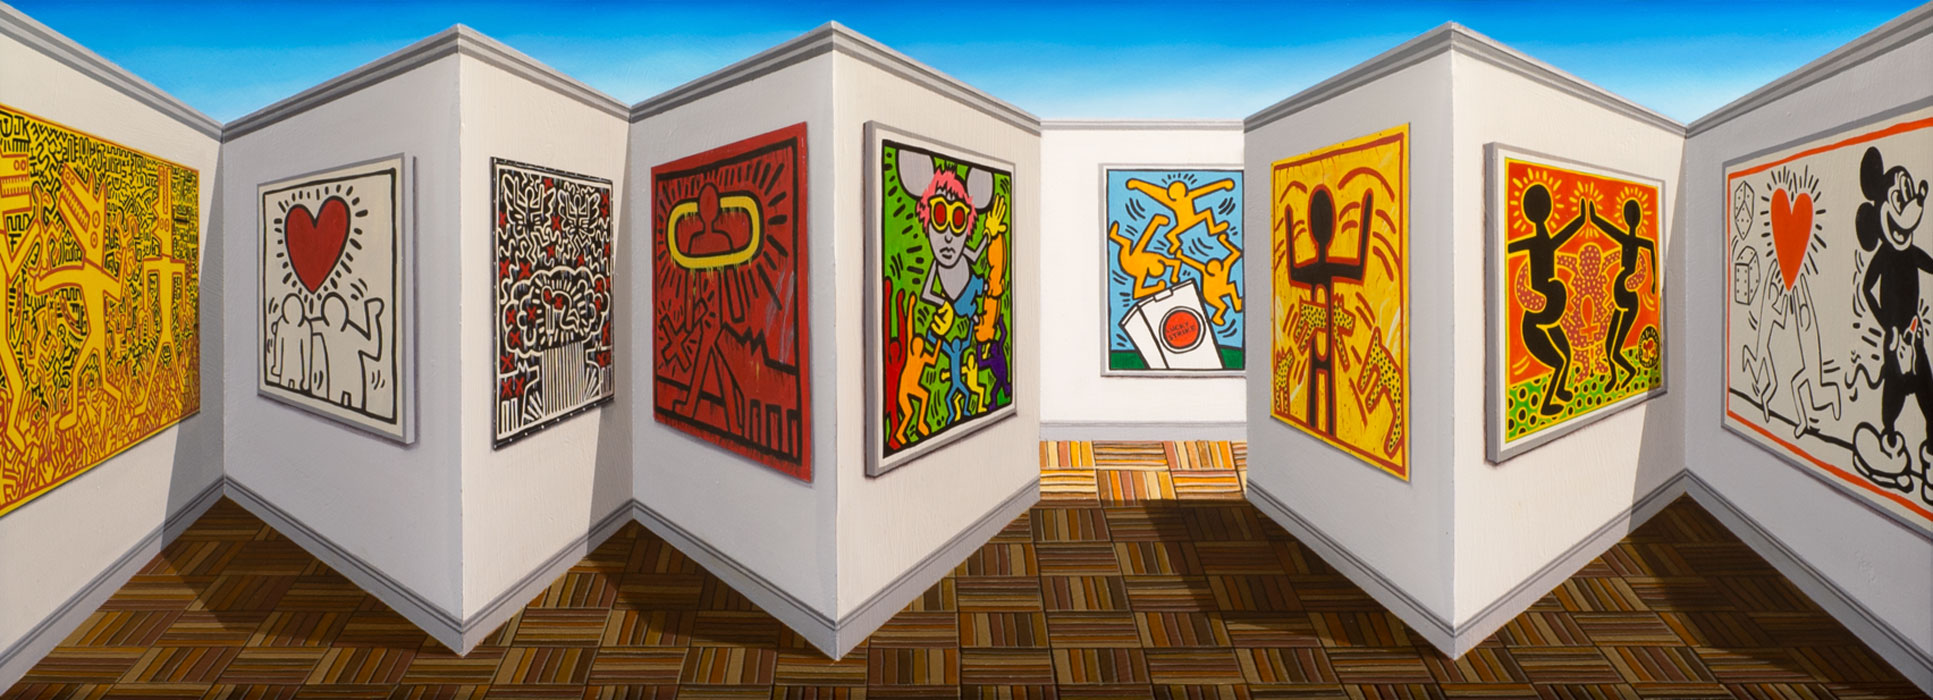 Sharing Haring <p>2014 | 50 X 104 X 13 cm / 20 x 41 x 5 in</p>